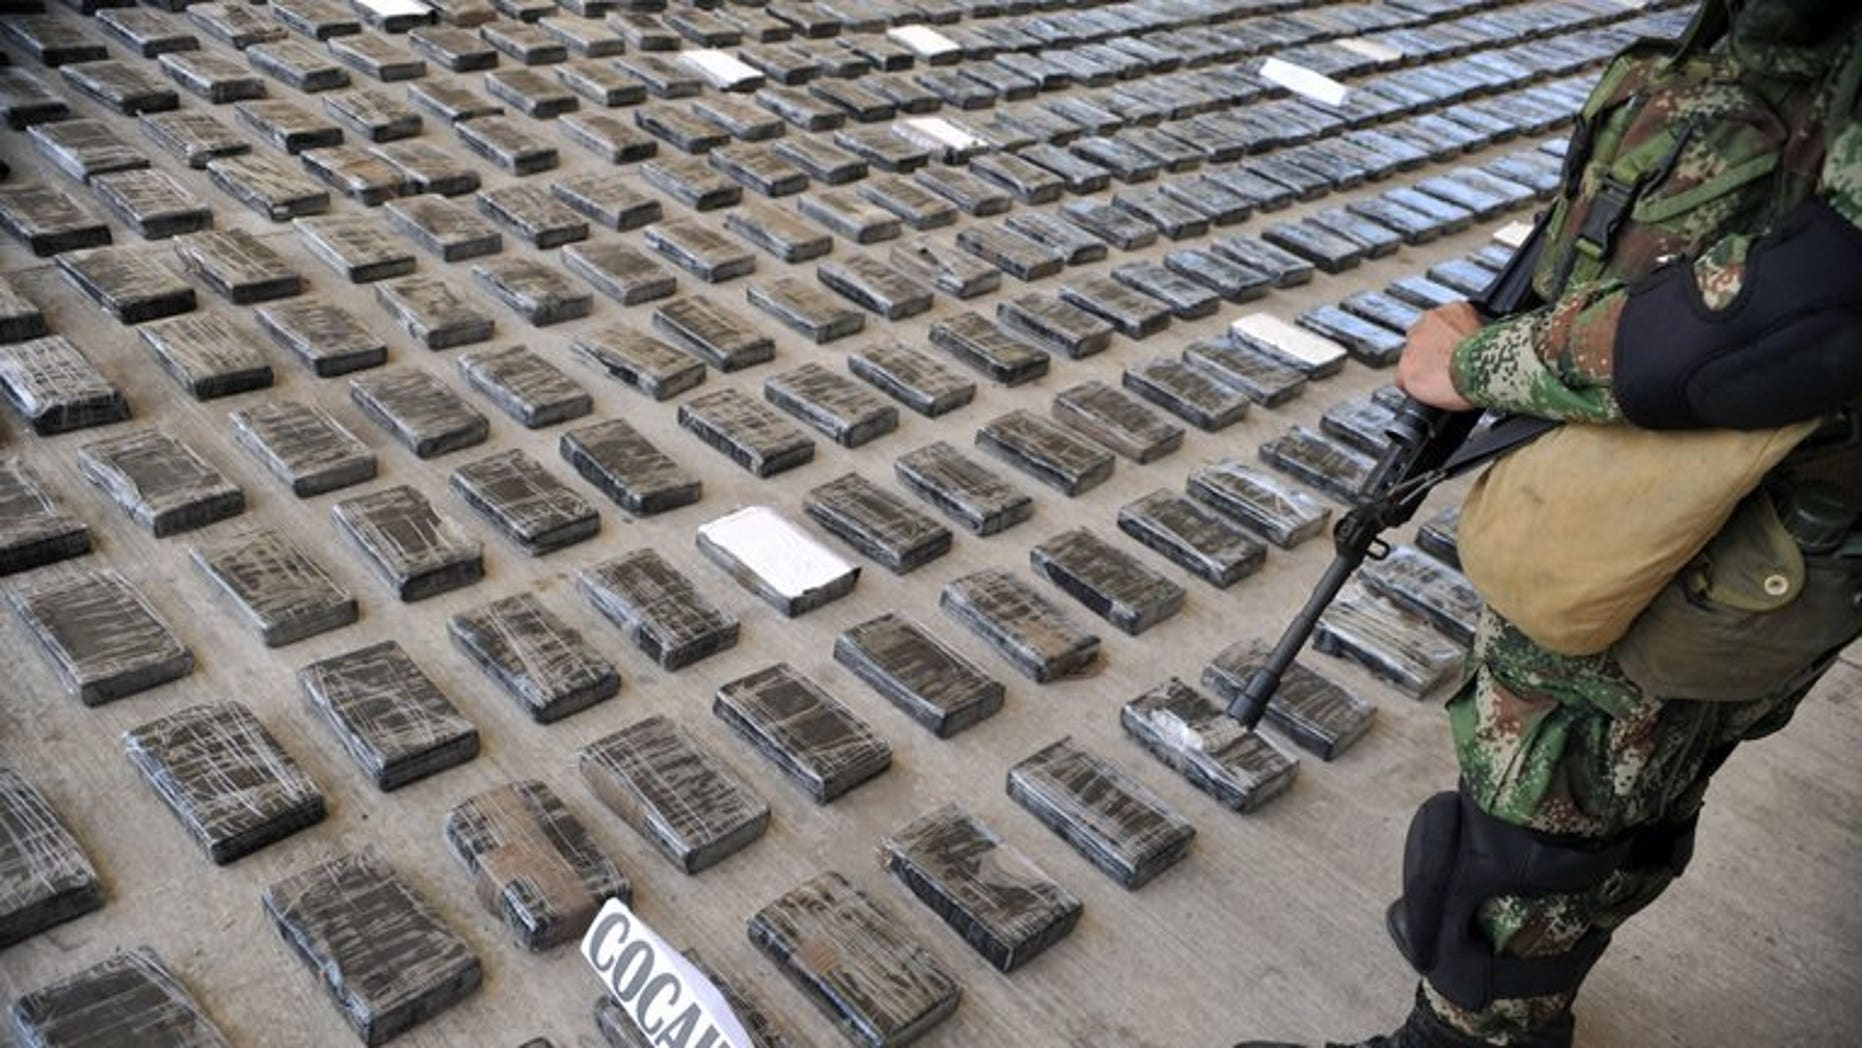 A soldier guards a huge shipment of cocaine seized in a clandestine laboratory, on March 16, 2013, in Tumaco, Colombia. An Italian mafia capo alleged to be the biggest cocaine trafficker in the world will be deported to Italy, a day after being arrested in a Colombian shopping mall, prosecutors said.